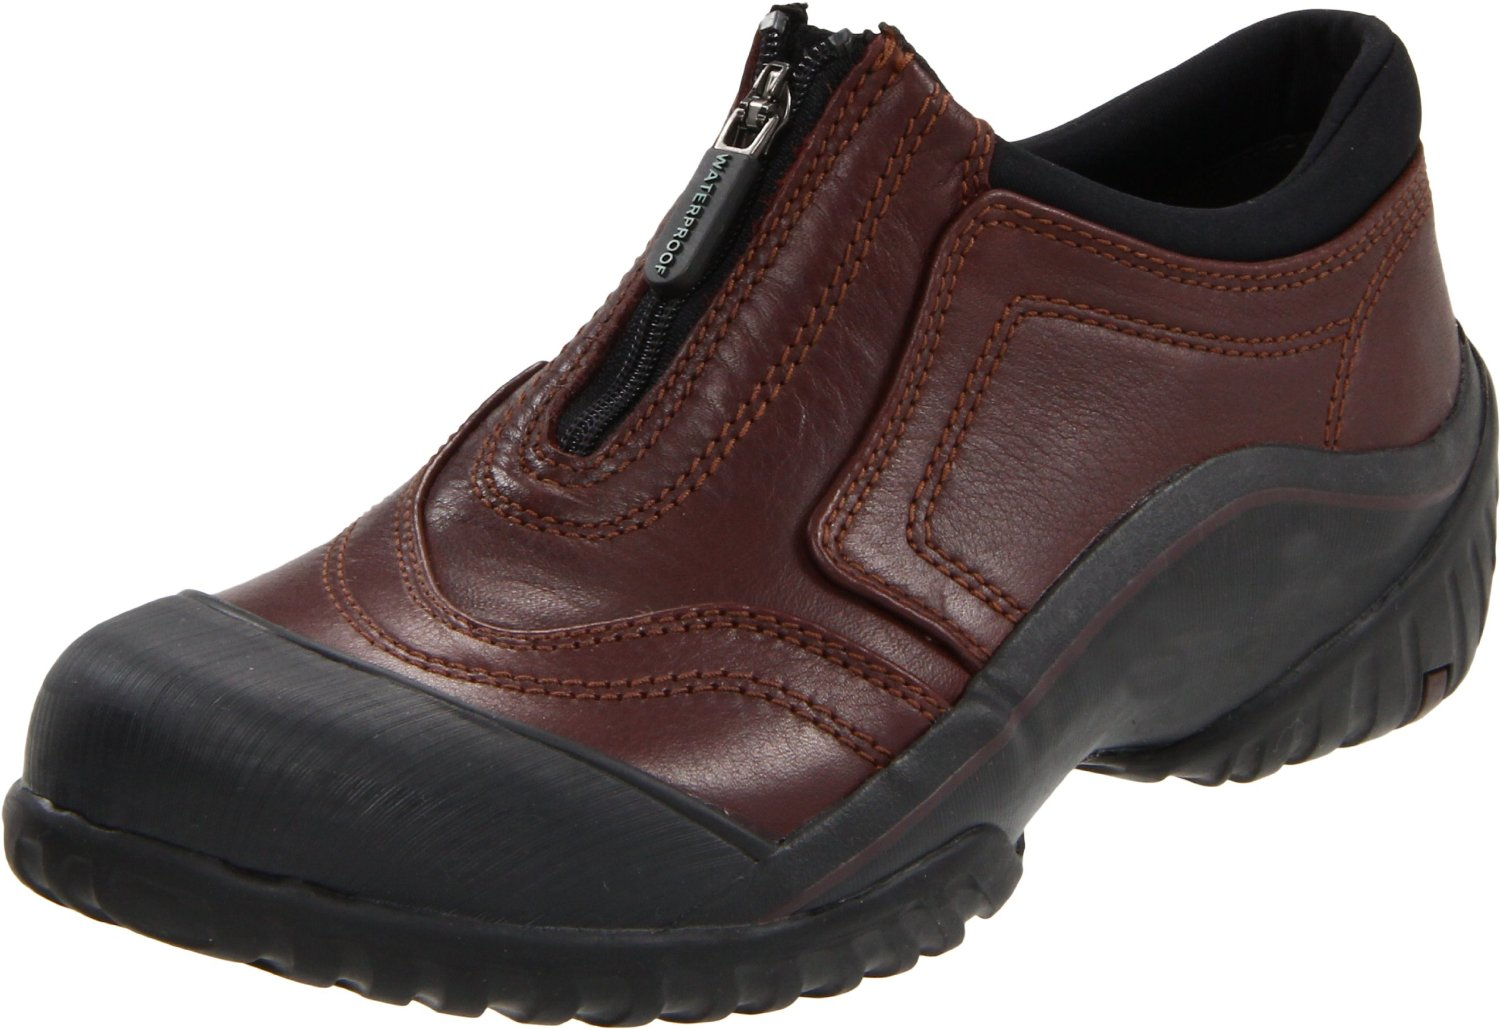 How to use a Clarks coupon Clarks, a trusted name in shoes, offers many ways to save on shoes for men, women and children. Online, check out their seasonal promotion codes and save 20% off .